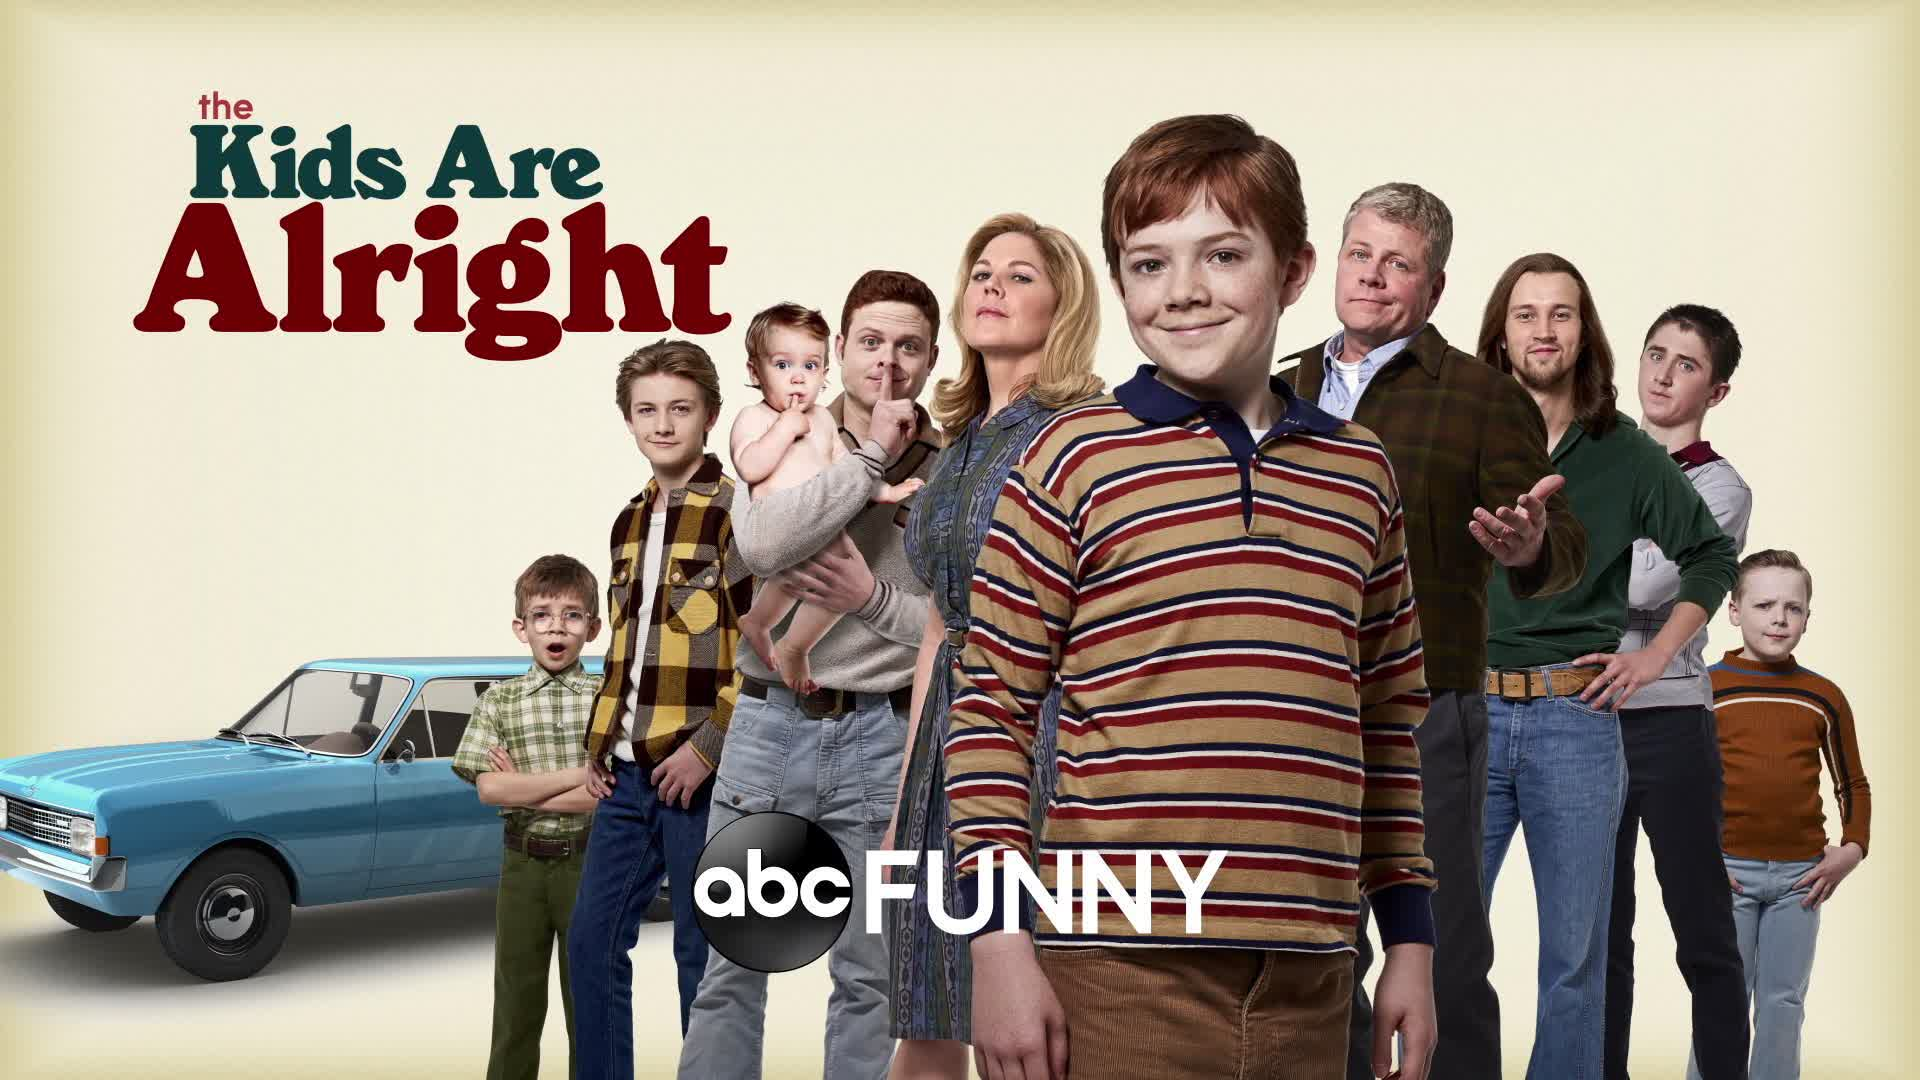 The Kids Are Alright - ABC TV